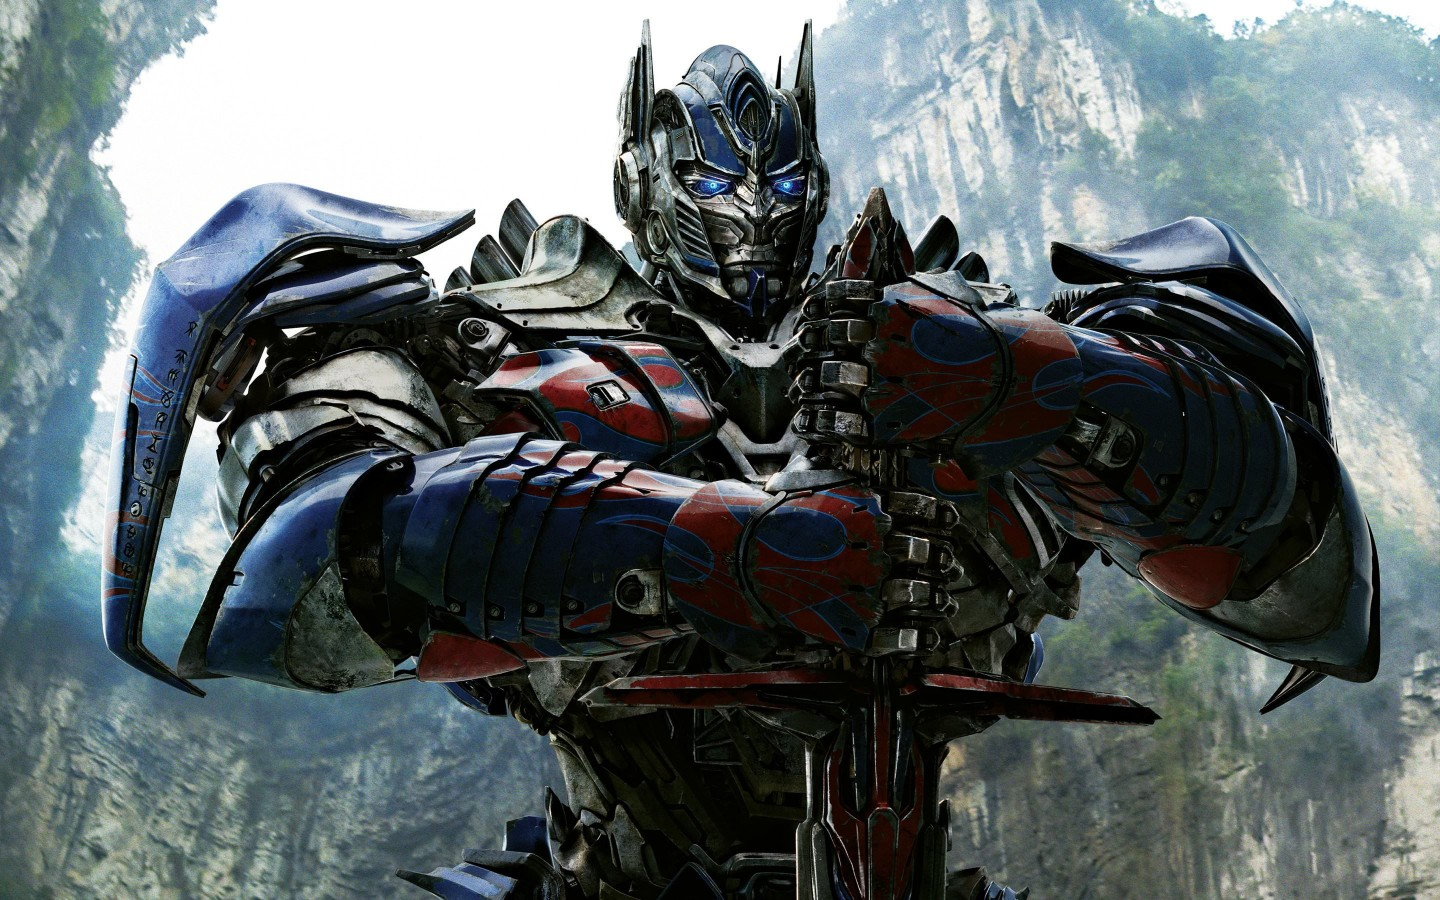 Optimus Prime - Transformers Wallpaper for Desktop 1440x900